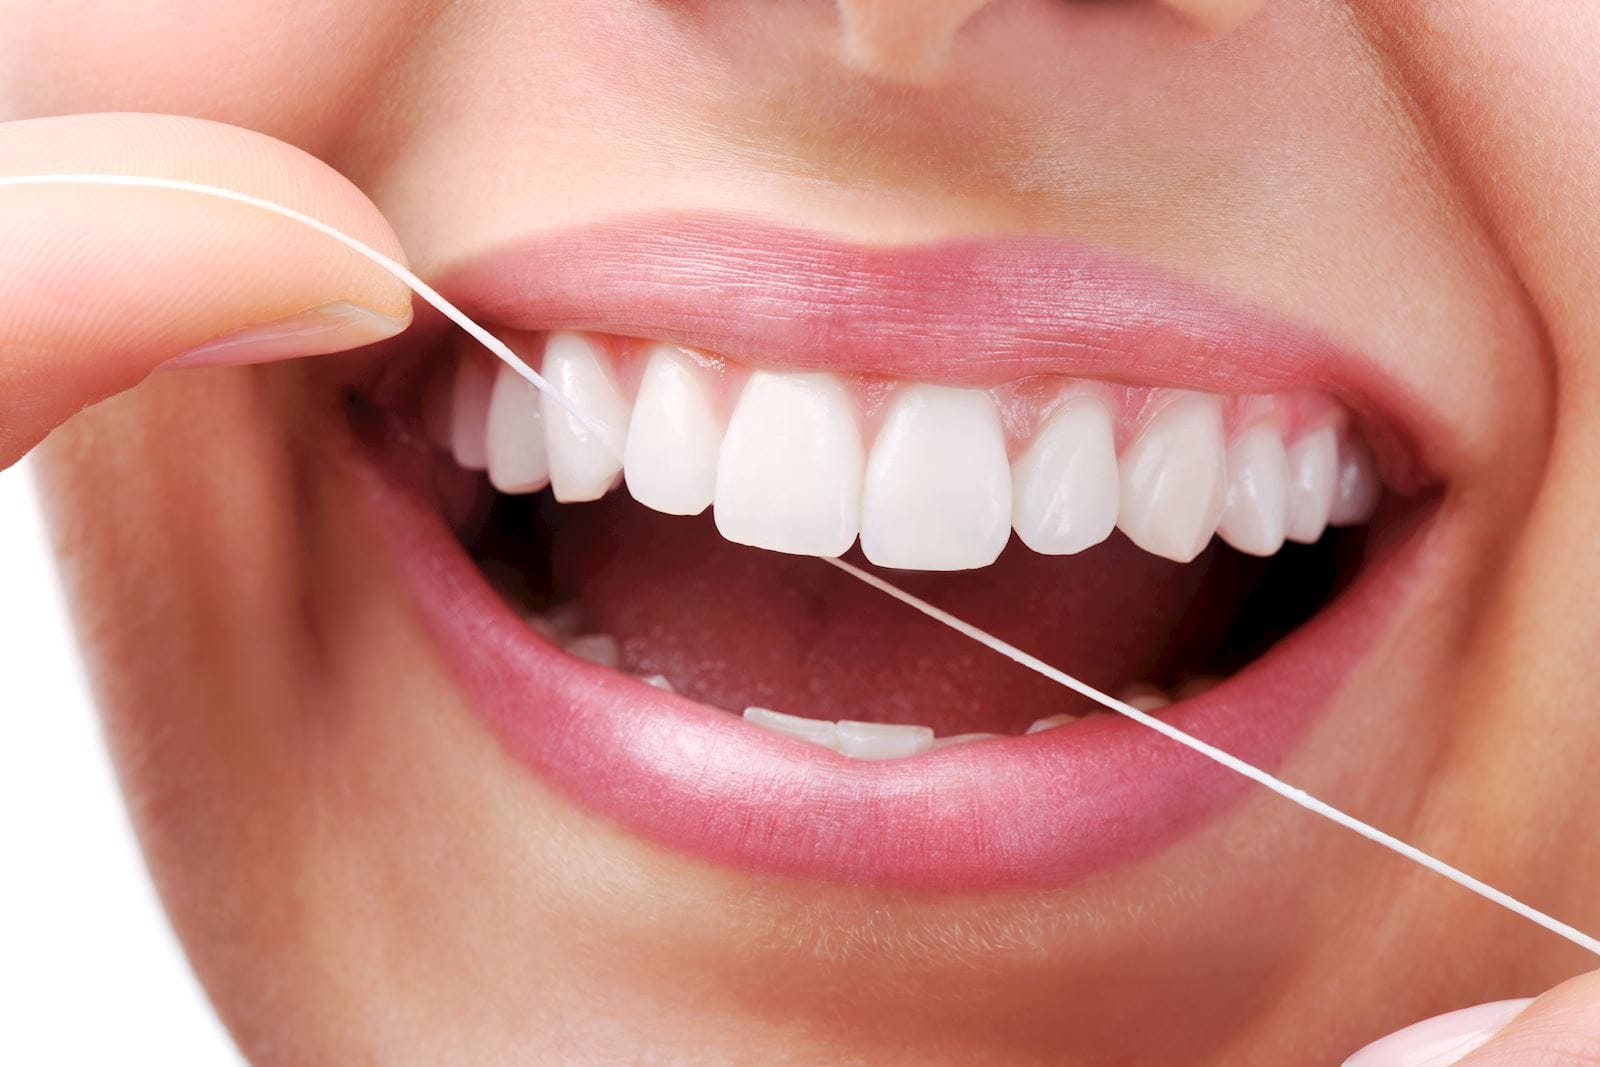 Flossing Teeth Effectively